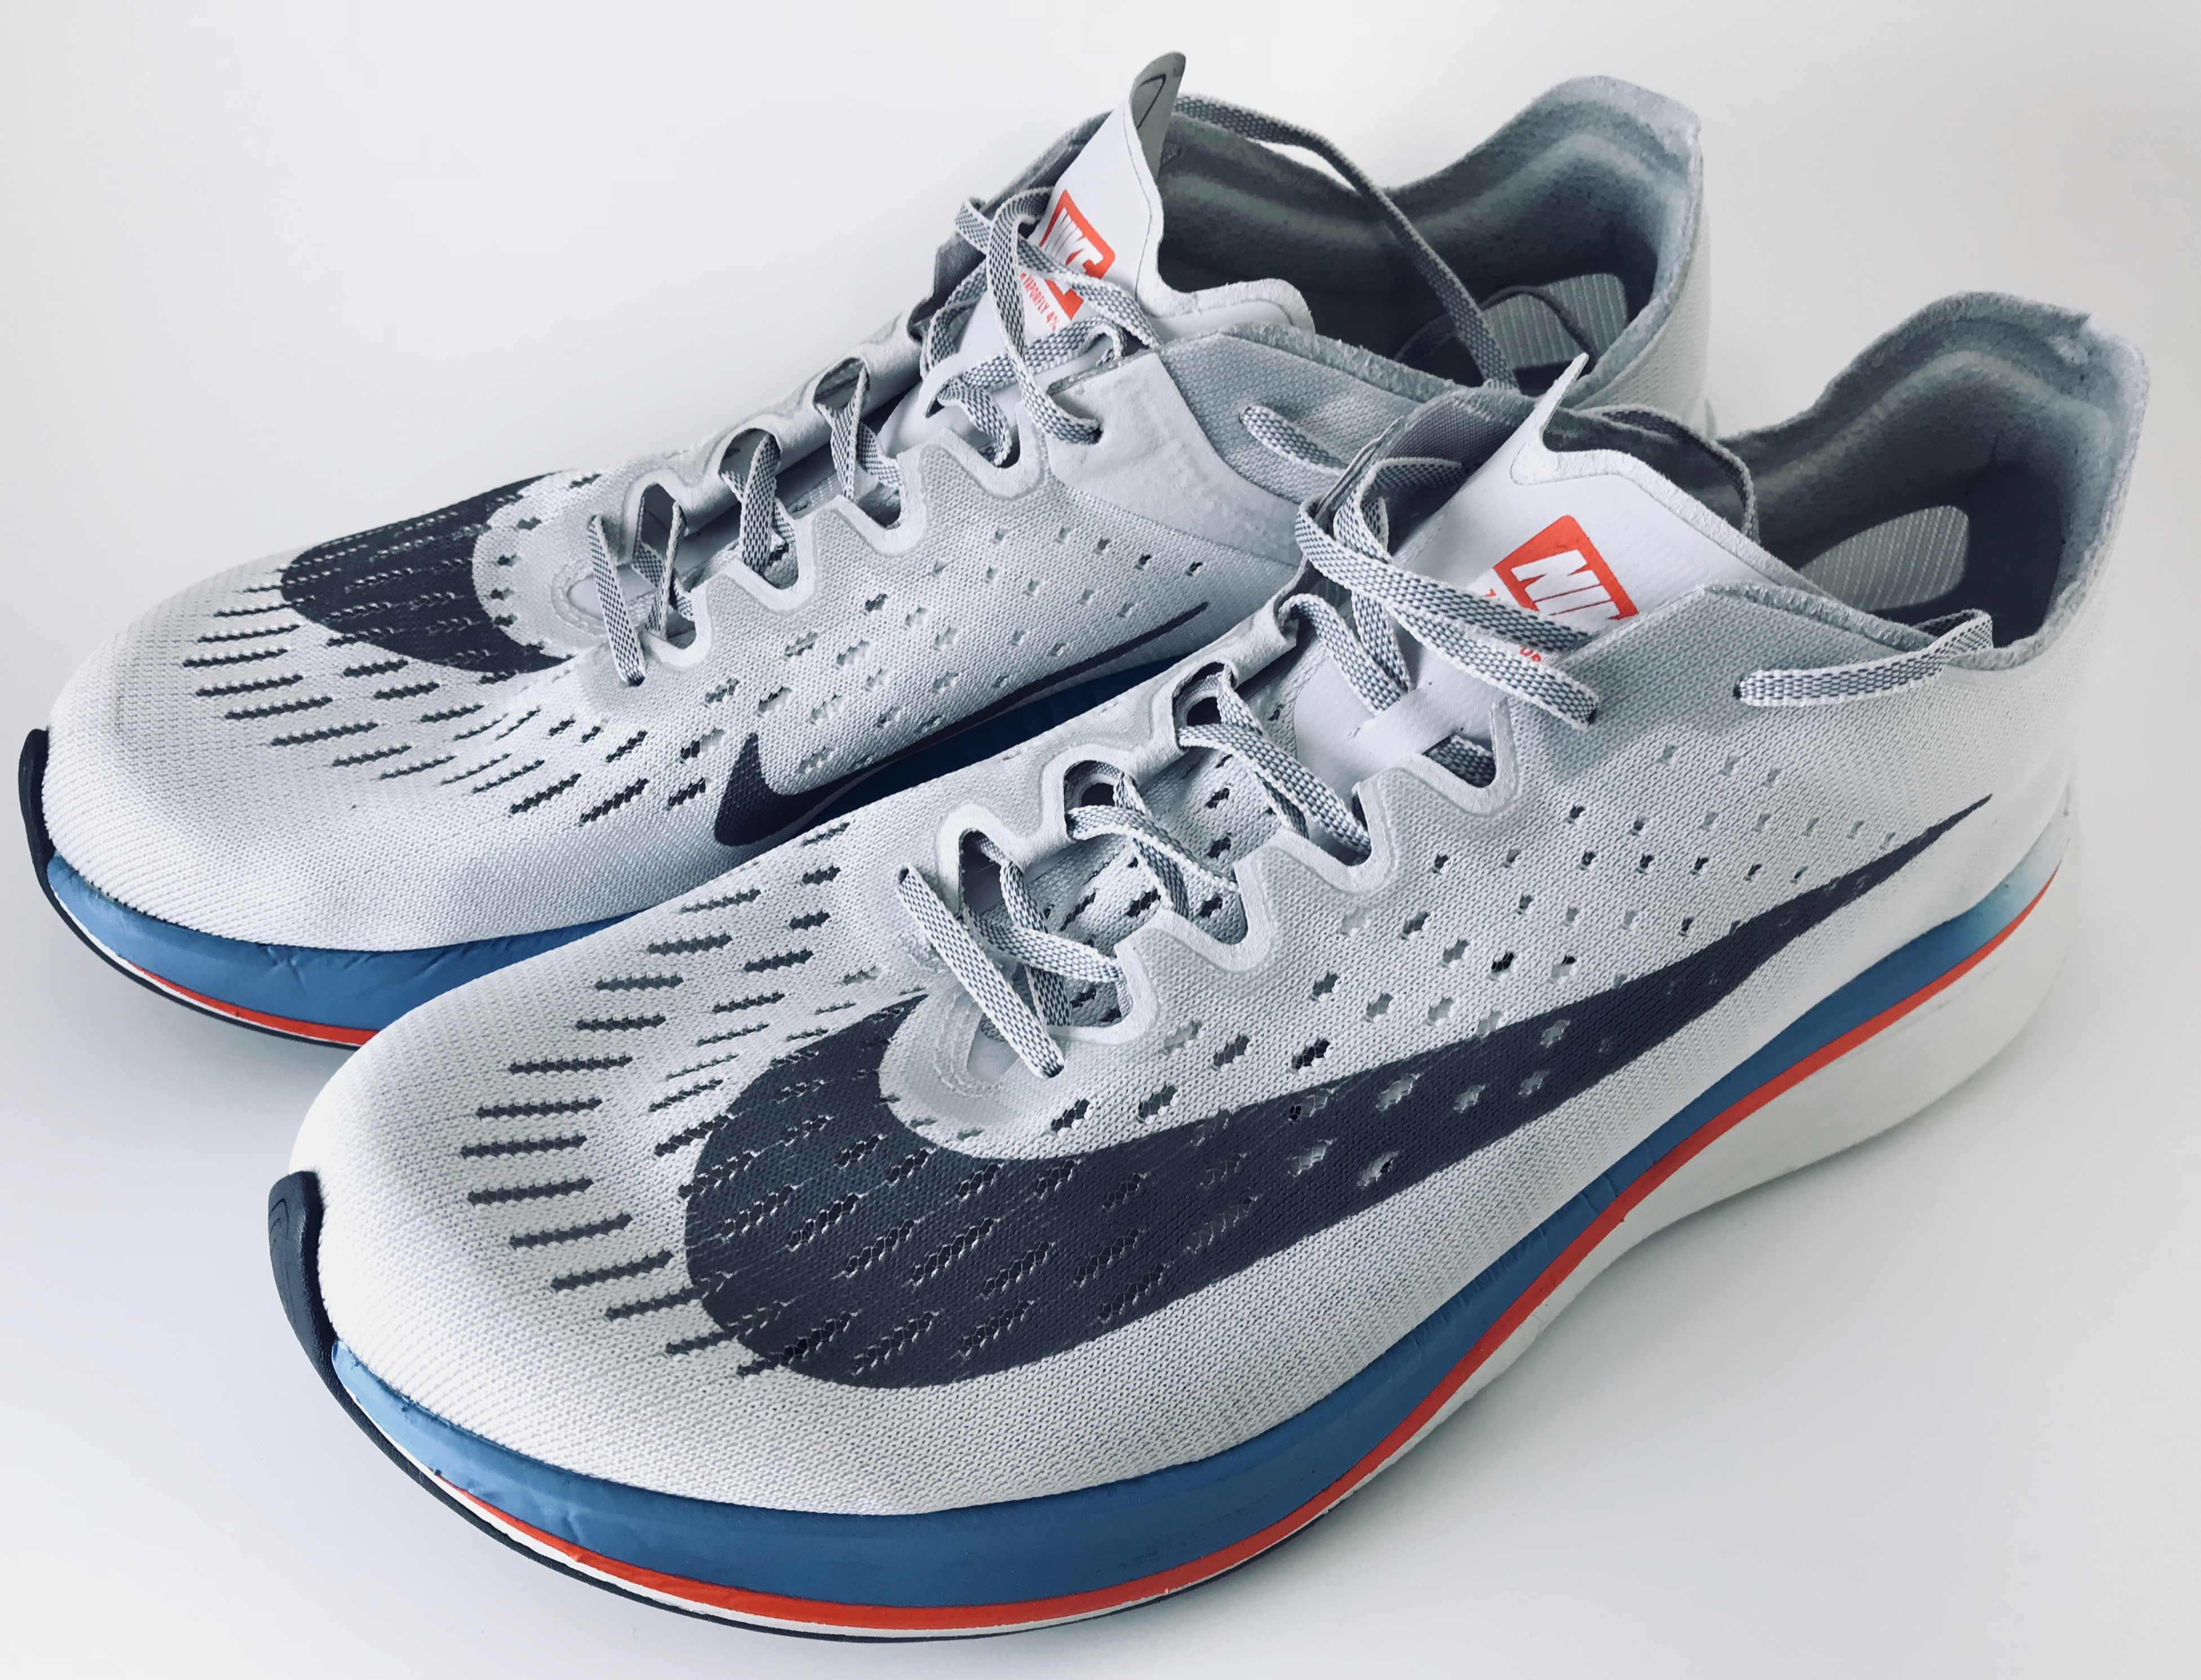 Nike Zoom Vaporfly 4% First Impressions